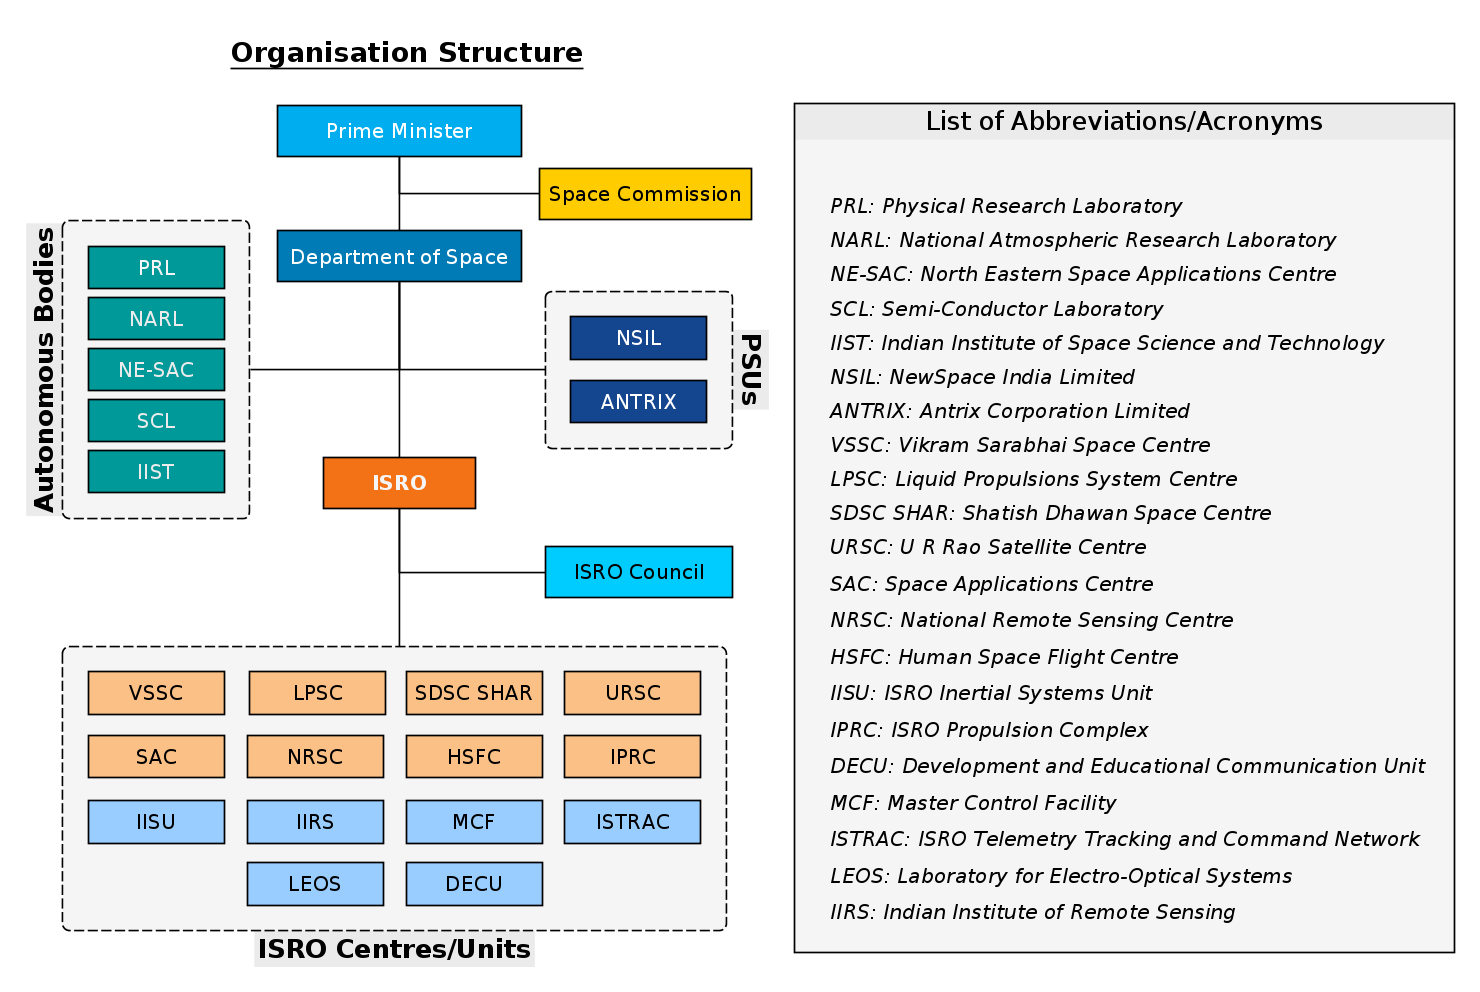 Importance Of An Organizational Chart: Department of Space (India) - organization chart.jpg ,Chart